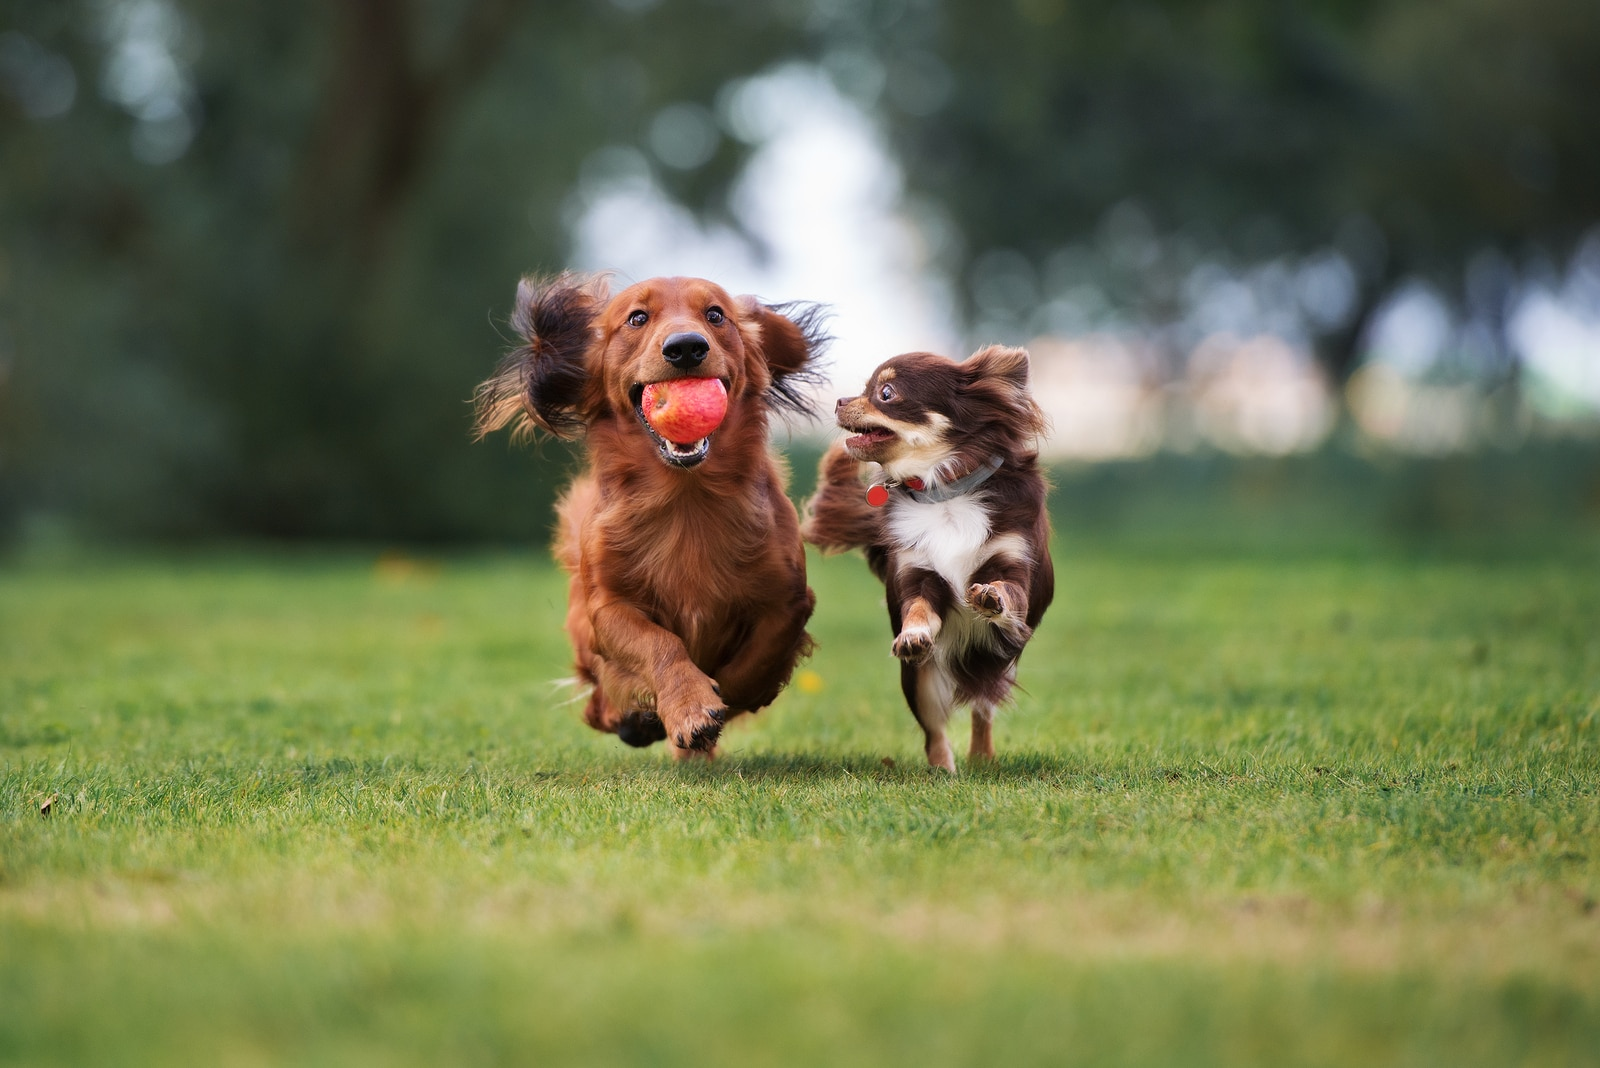 Long-haired dashchund with an apple in his mouth runs, while smaller brown dog runs along side.